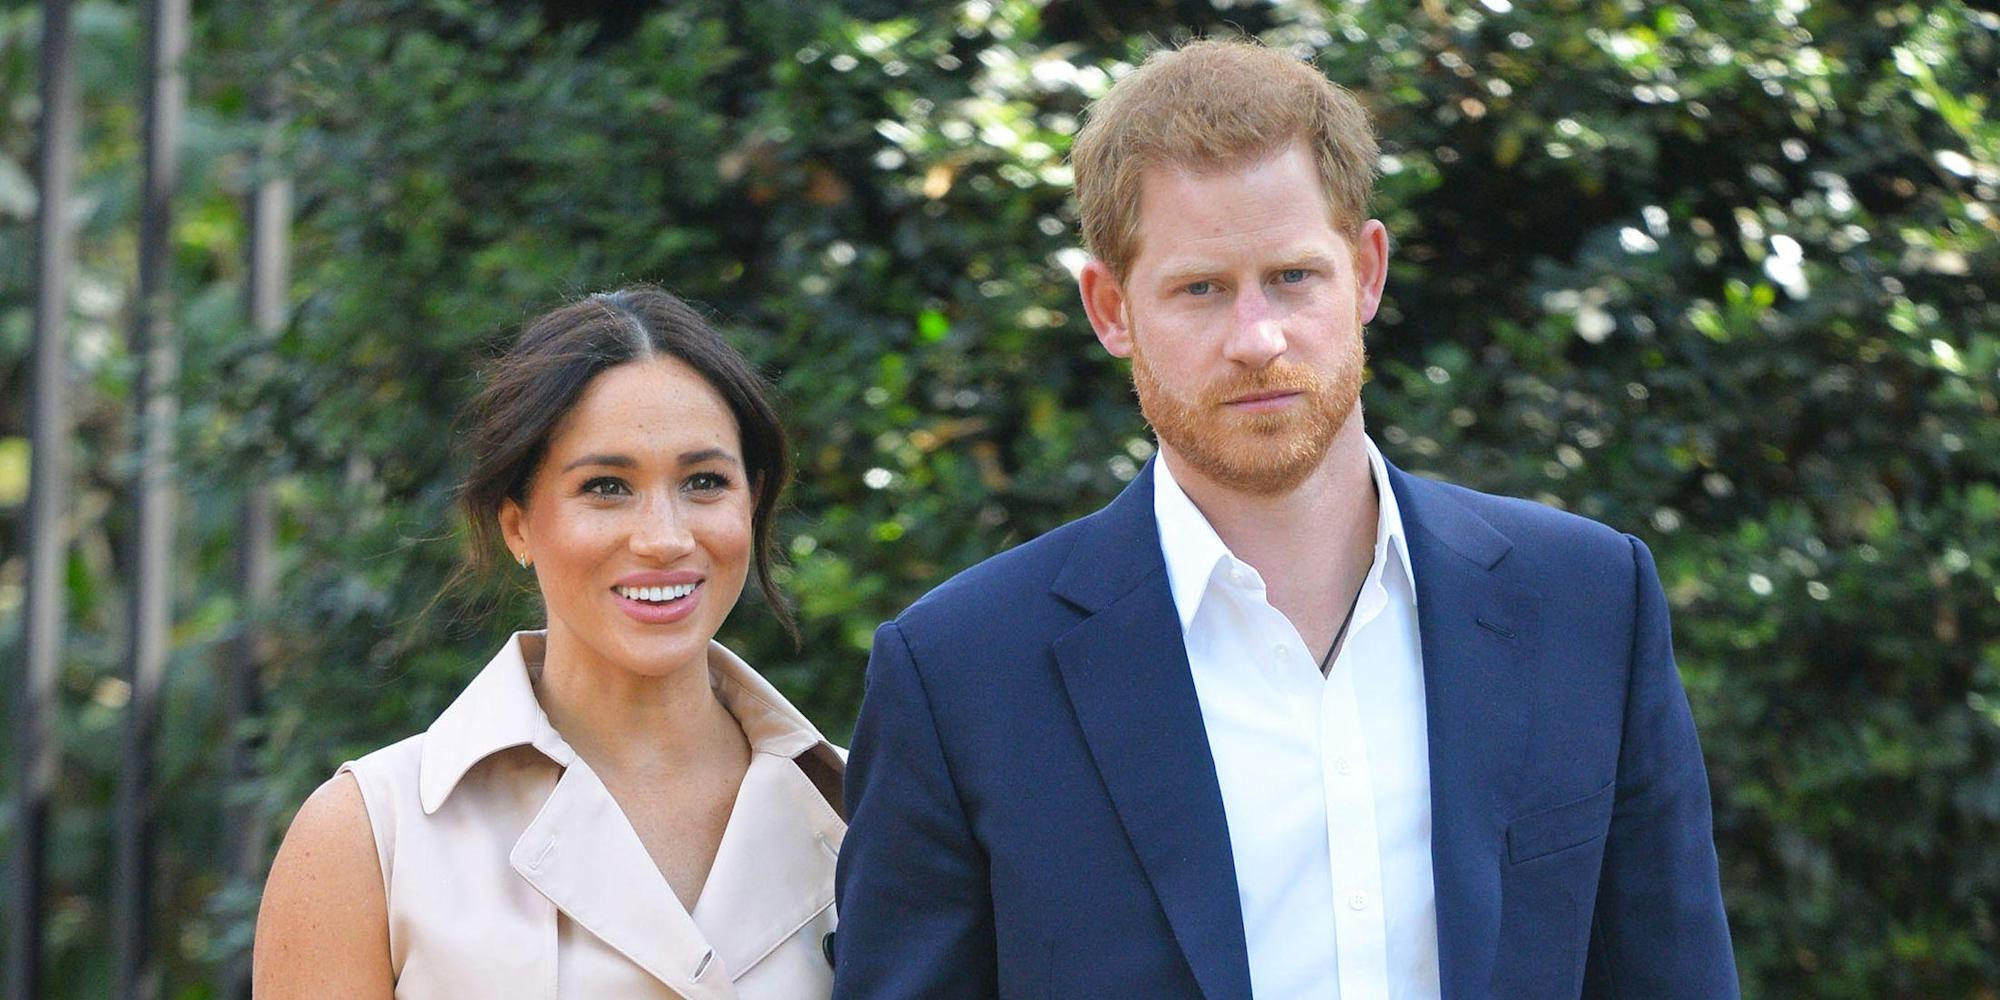 Prince Harry and Meghan Markle are reportedly seeking a 12-month extension for their royal retirement